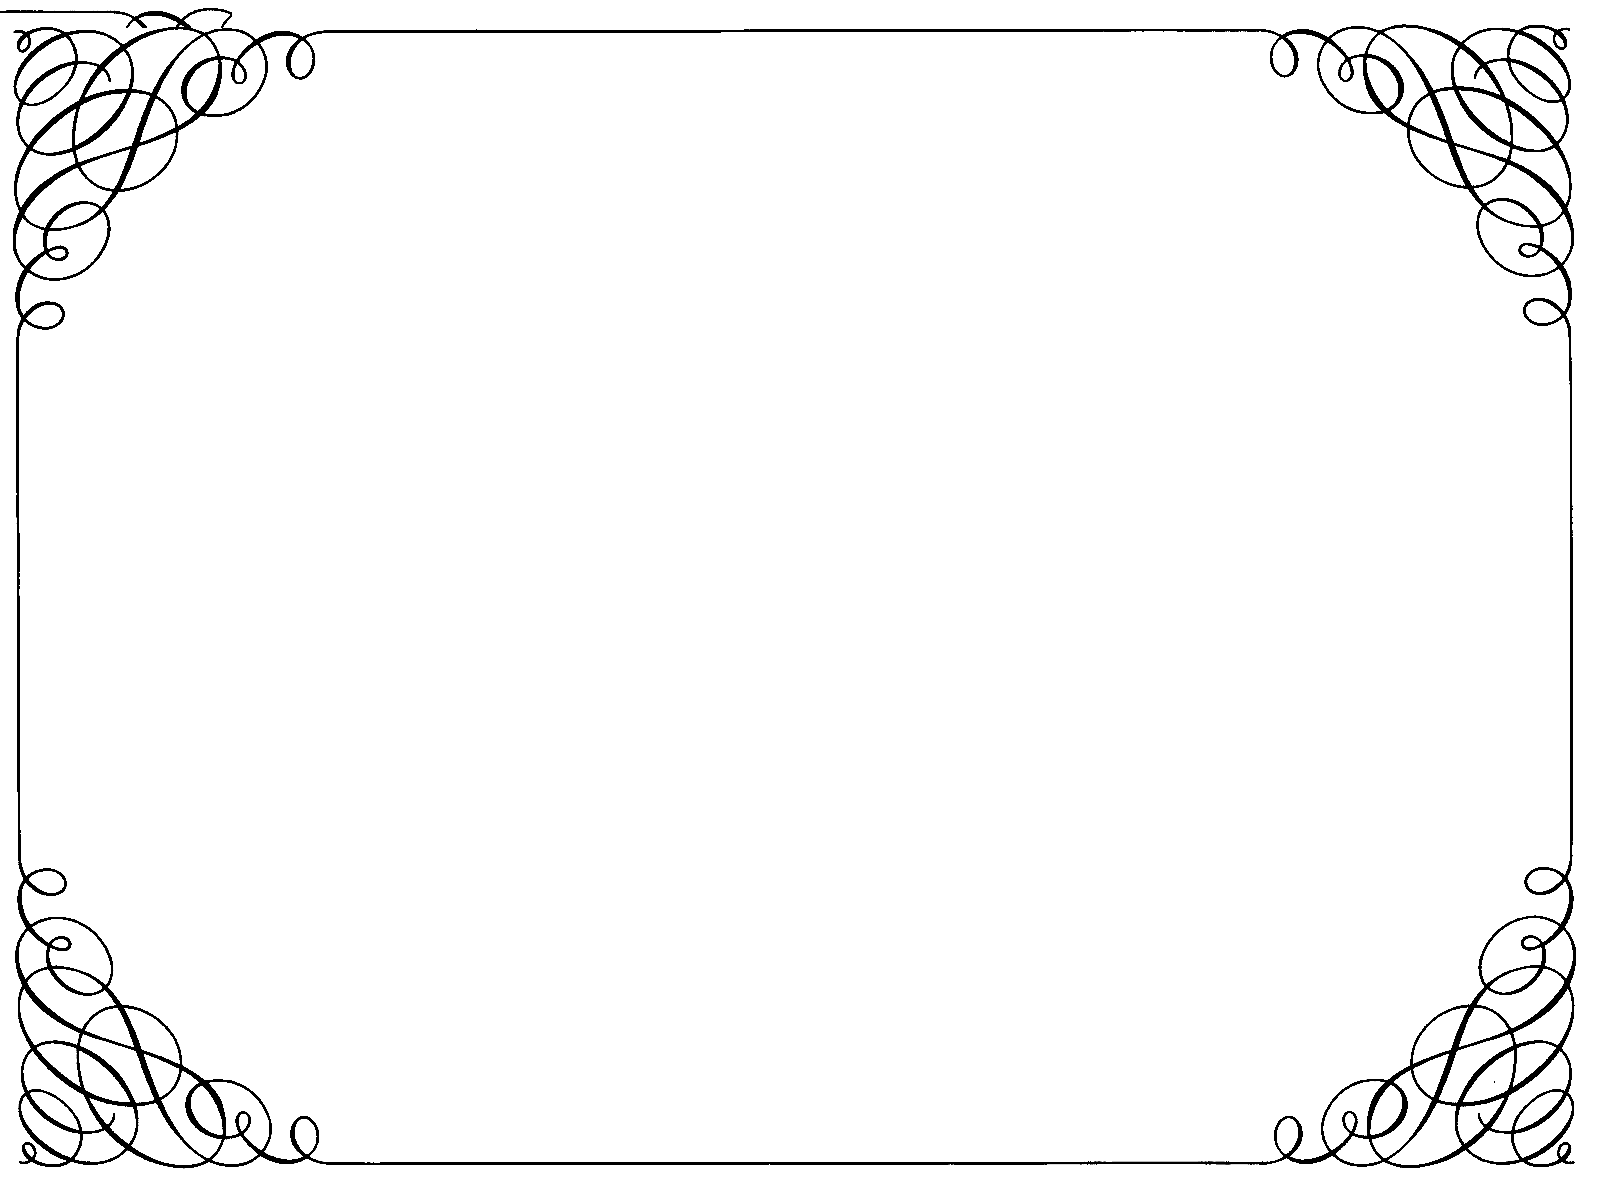 graphic free stock Ornate Curly Border transparent PNG